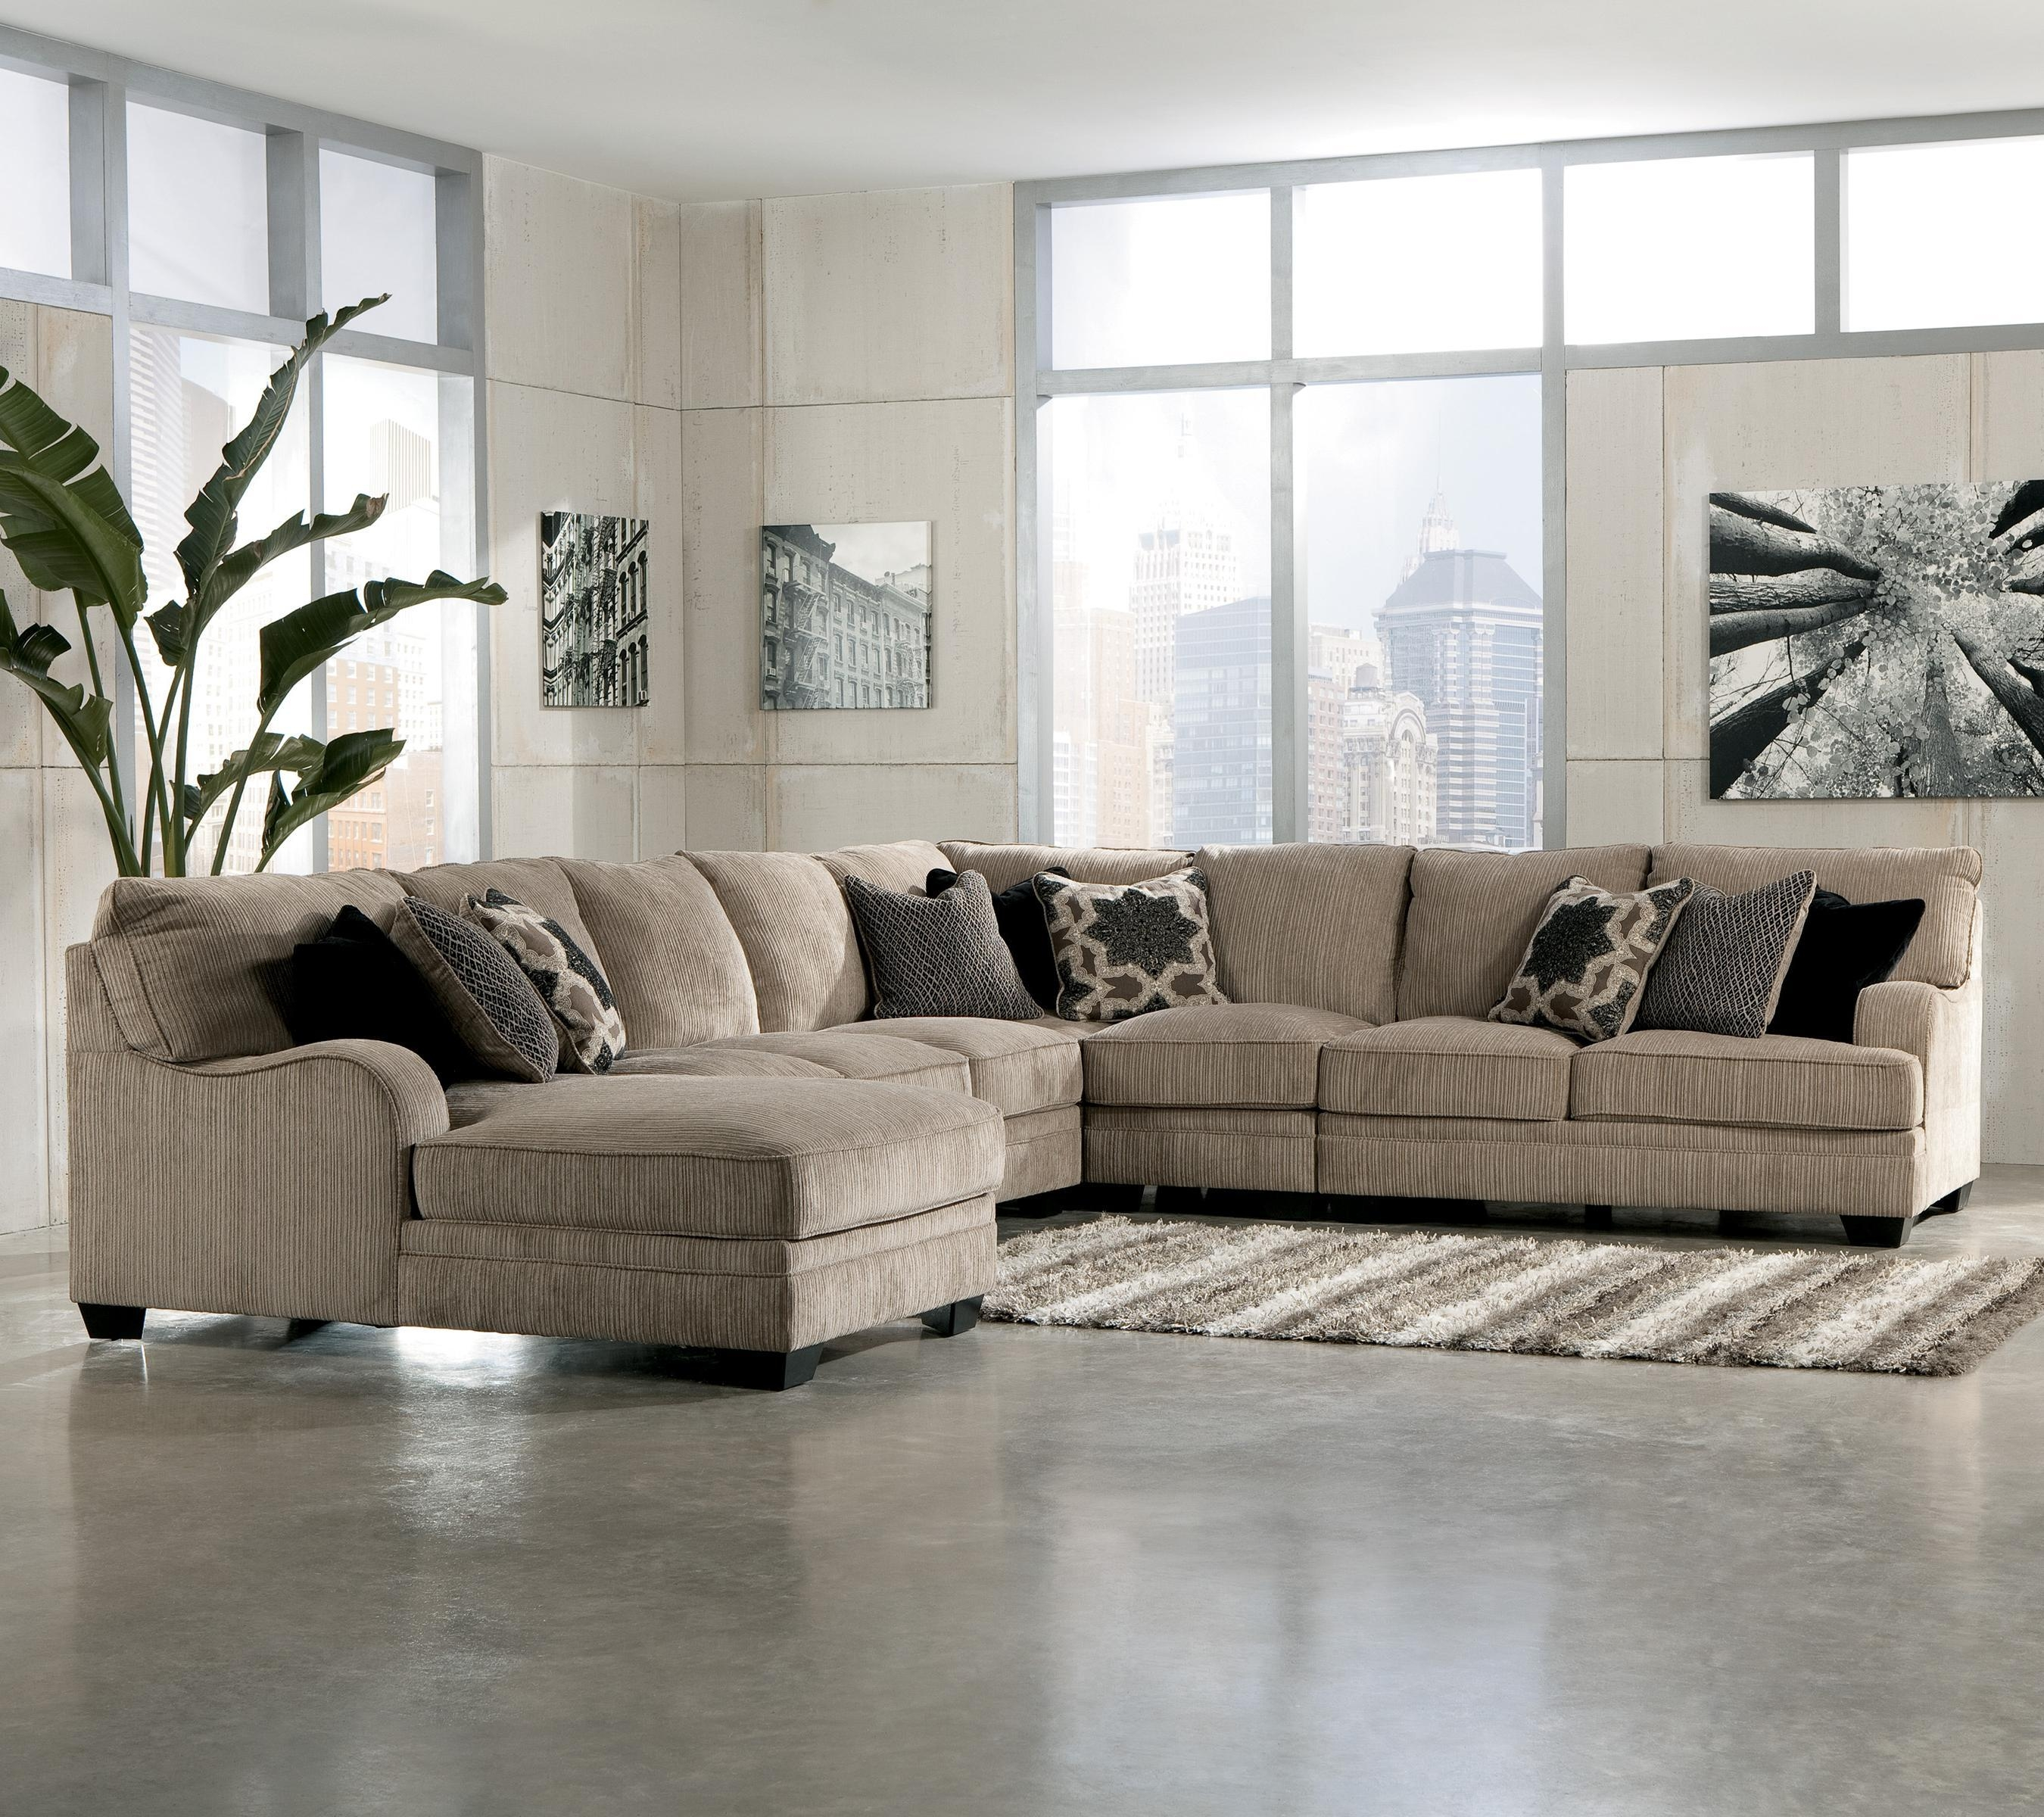 Signature Designashley Katisha – Platinum 5 Piece Sectional Inside Ashley Furniture Brown Corduroy Sectional Sofas (View 17 of 20)